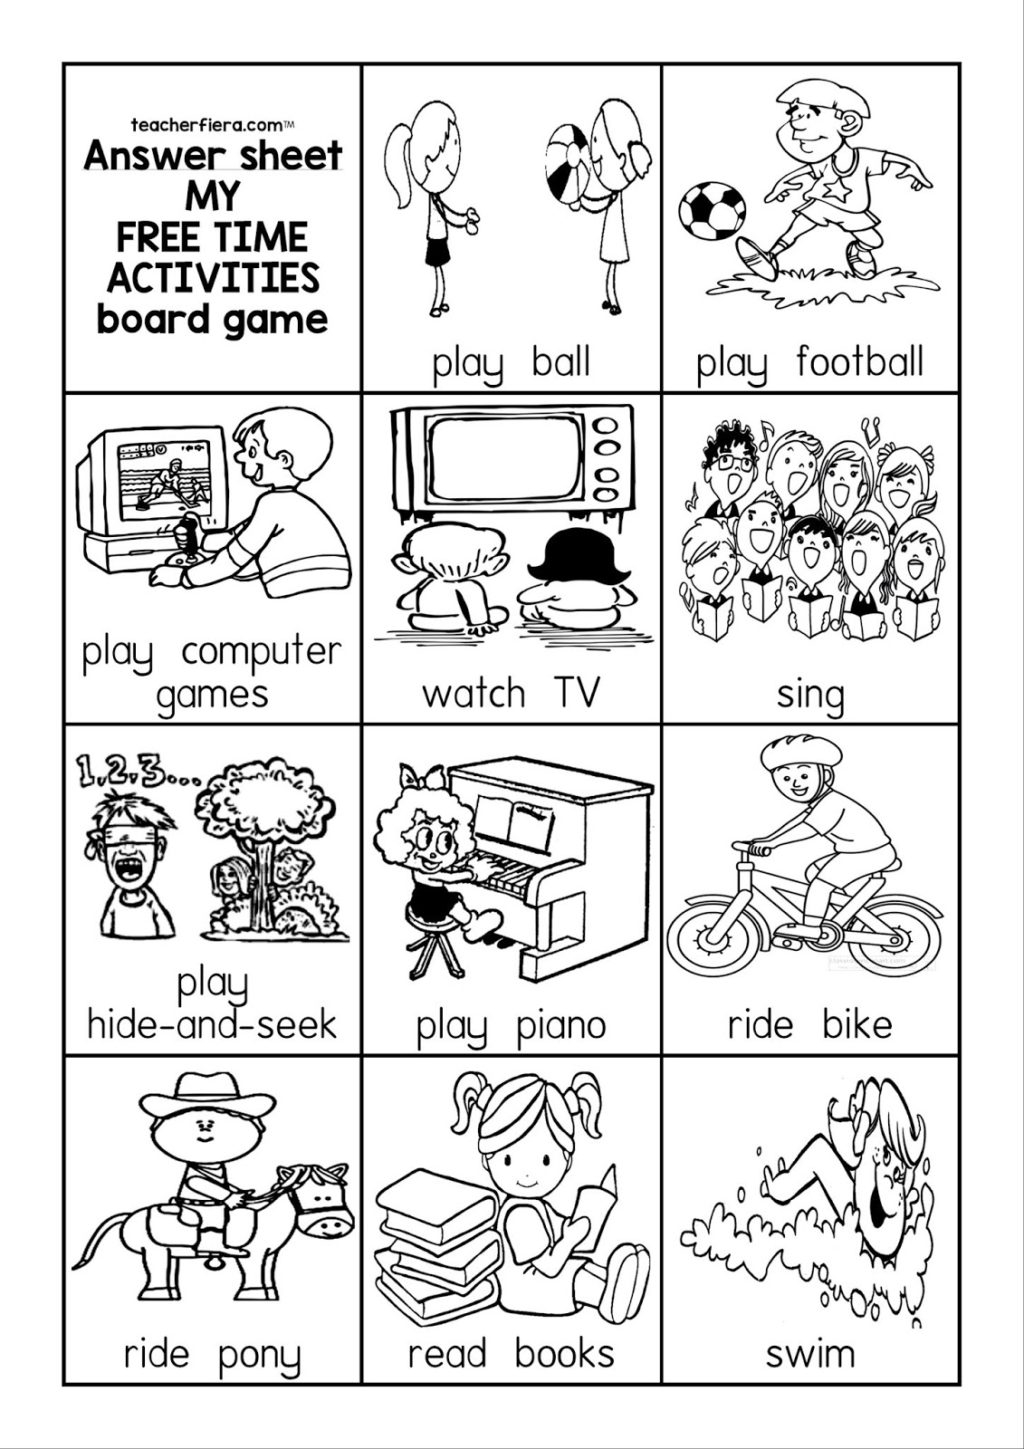 hight resolution of Addition Of Money Worksheet Rs   Printable Worksheets and Activities for  Teachers